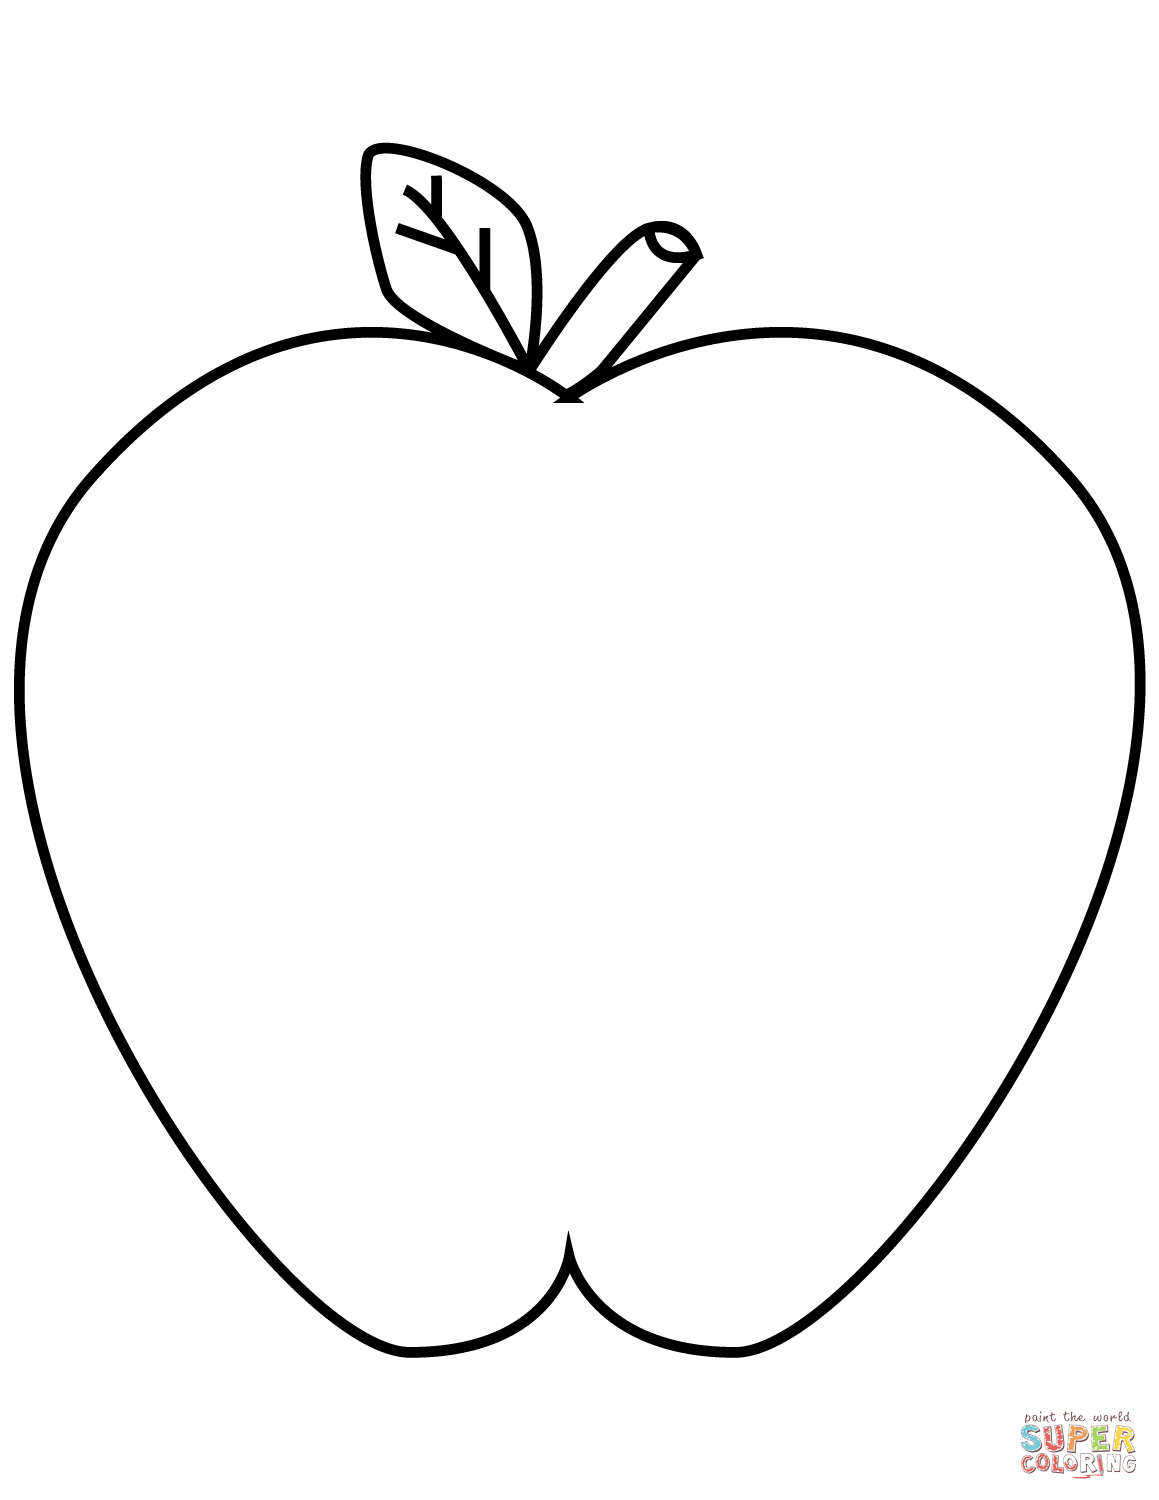 coloring picture of an apple an apple coloring page free printable coloring pages for of picture an coloring apple